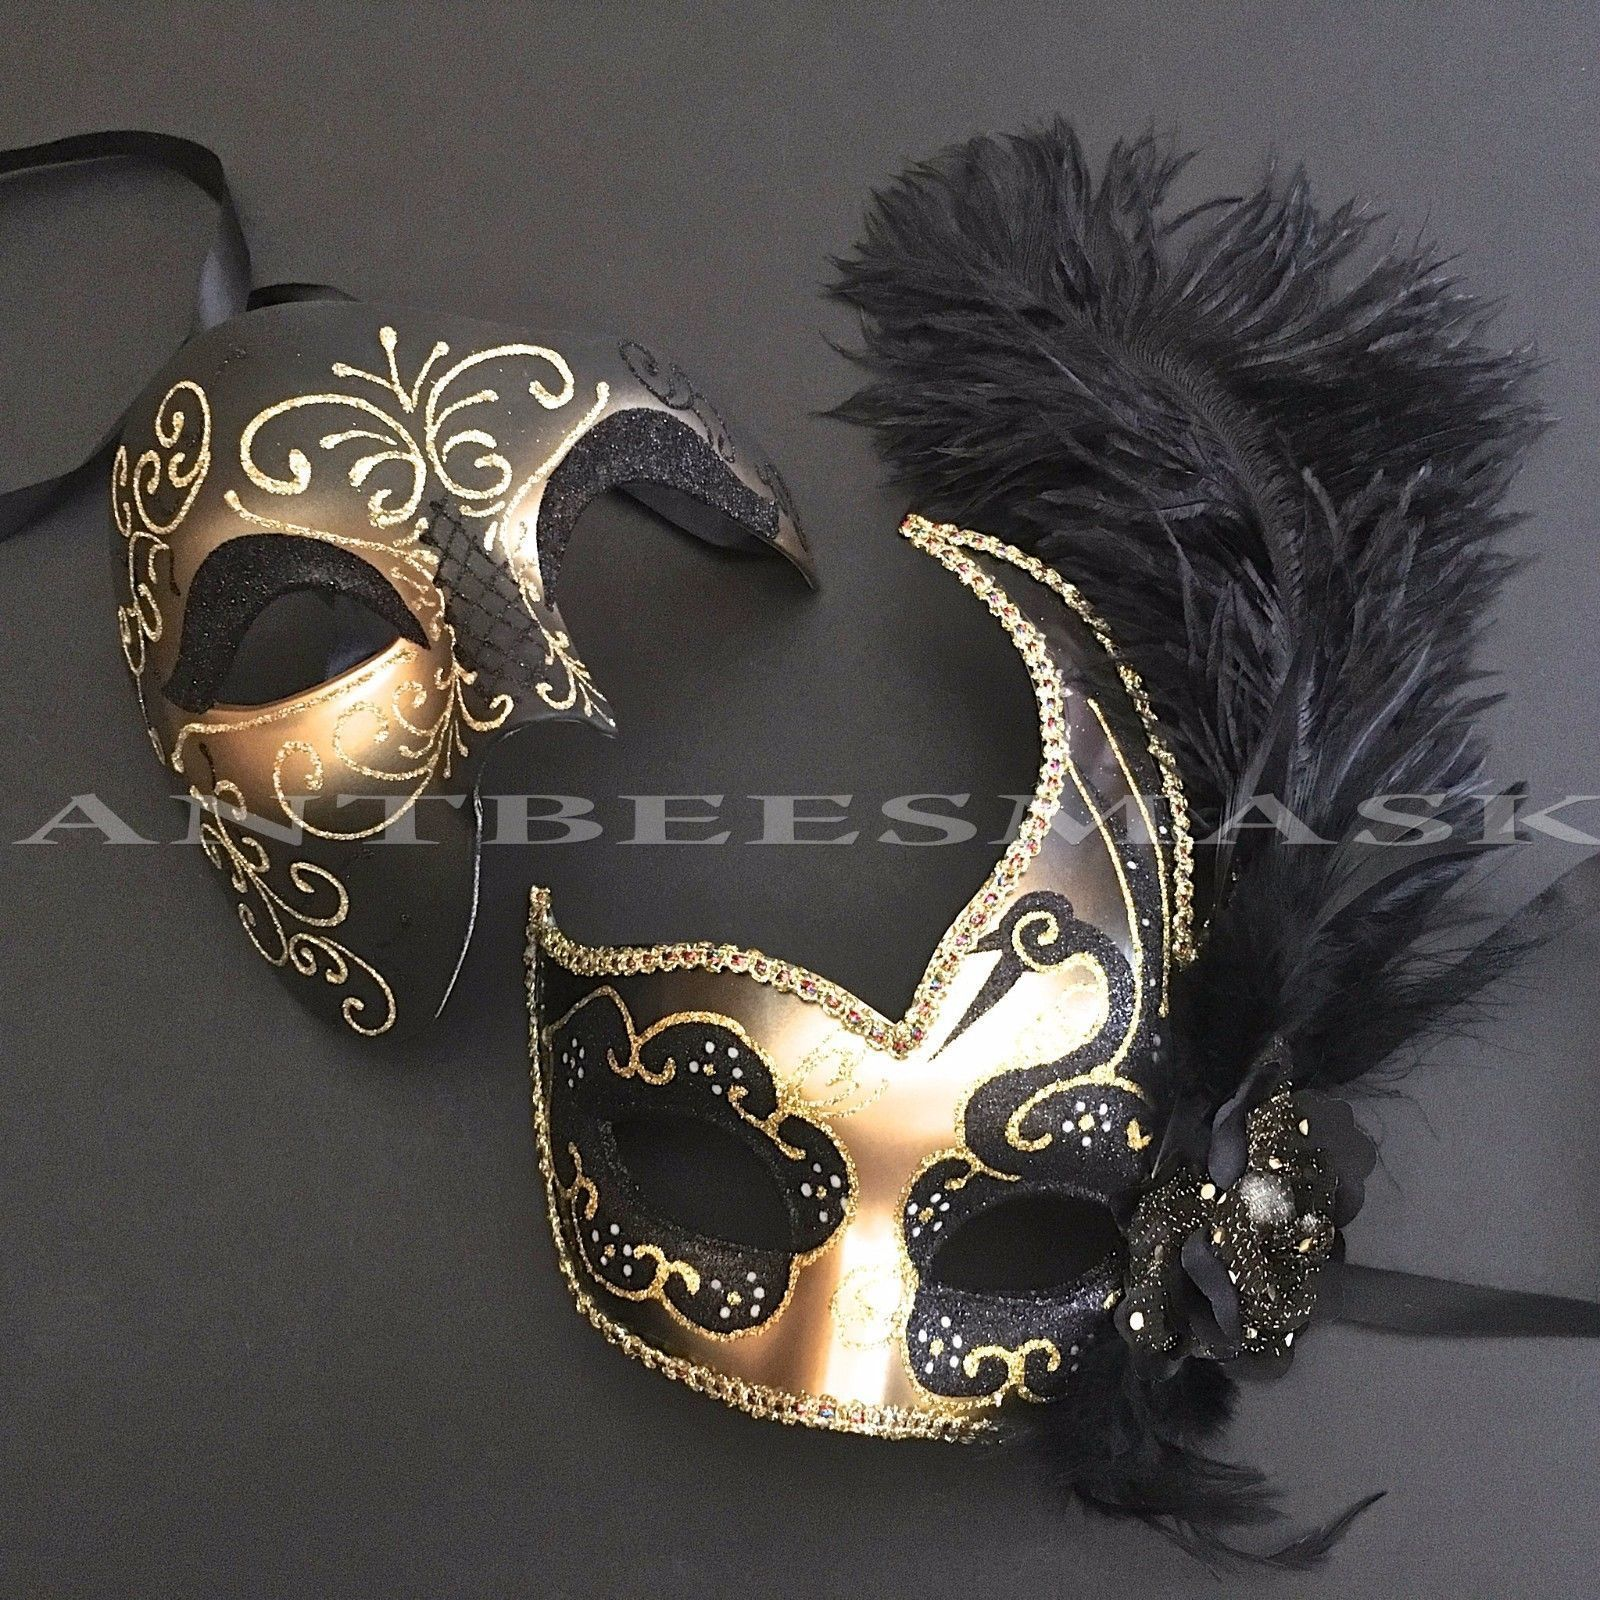 NEW Venetian Party Masquerade Face Mask Black /& Gold With Feathers